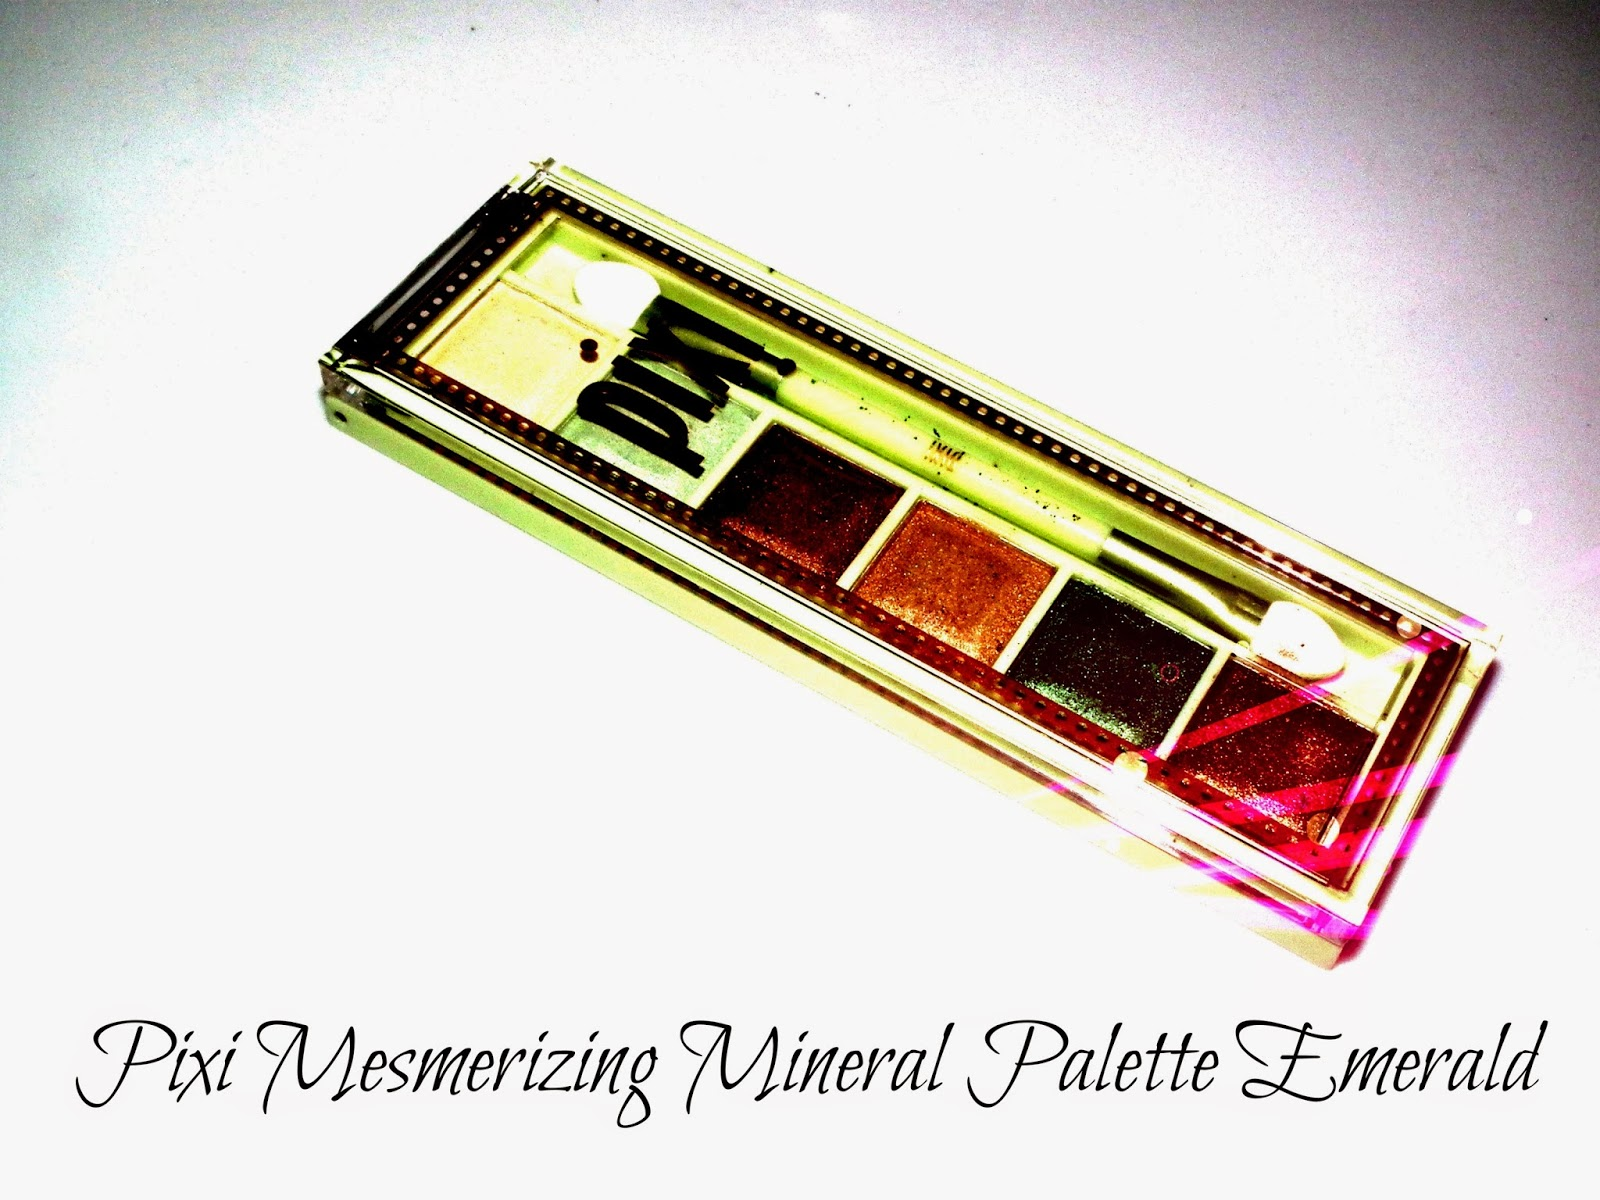 Pixi Mesmerizing Mineral Palette Emerald Swatches